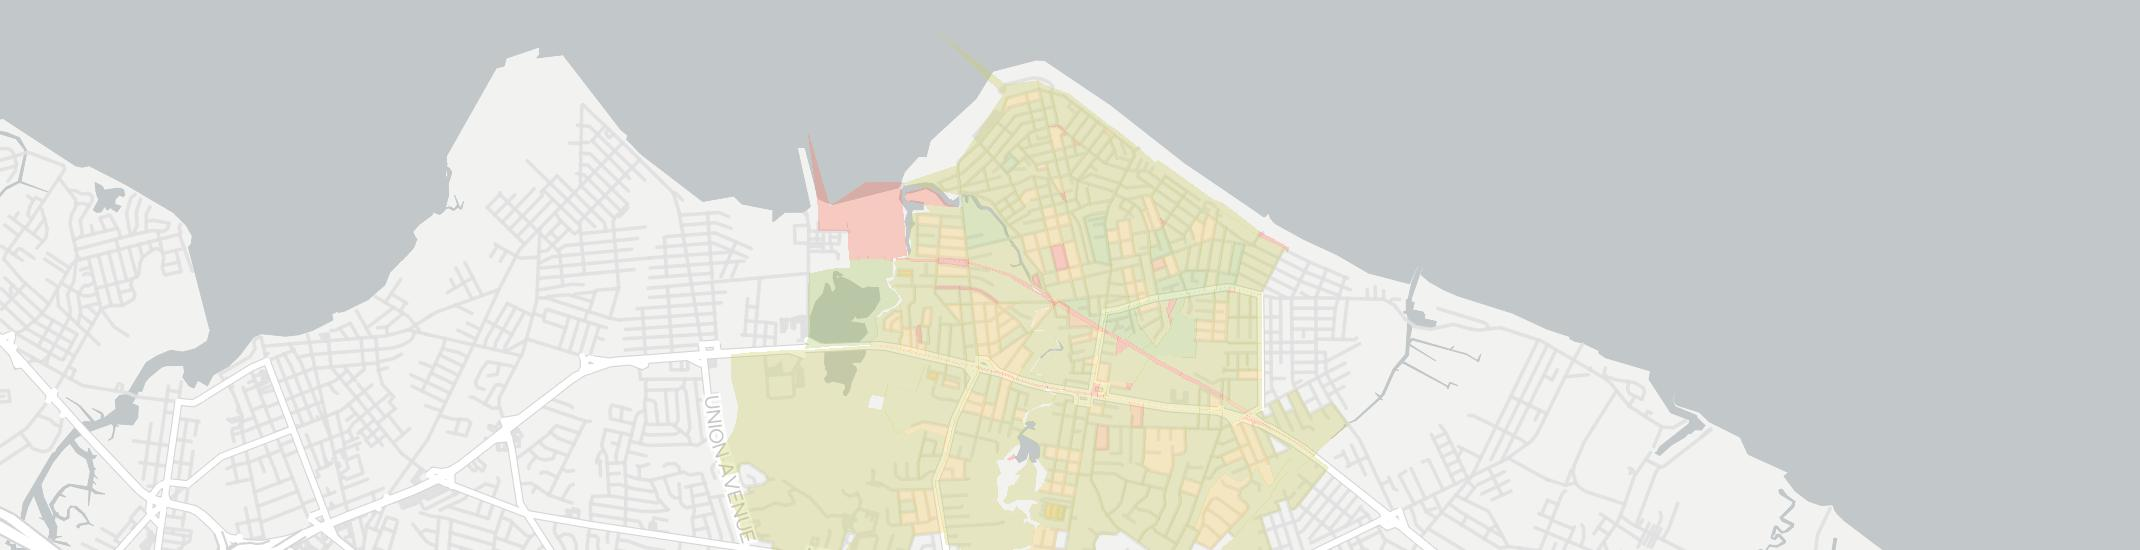 Keansburg Internet Competition Map. Click for interactive map.